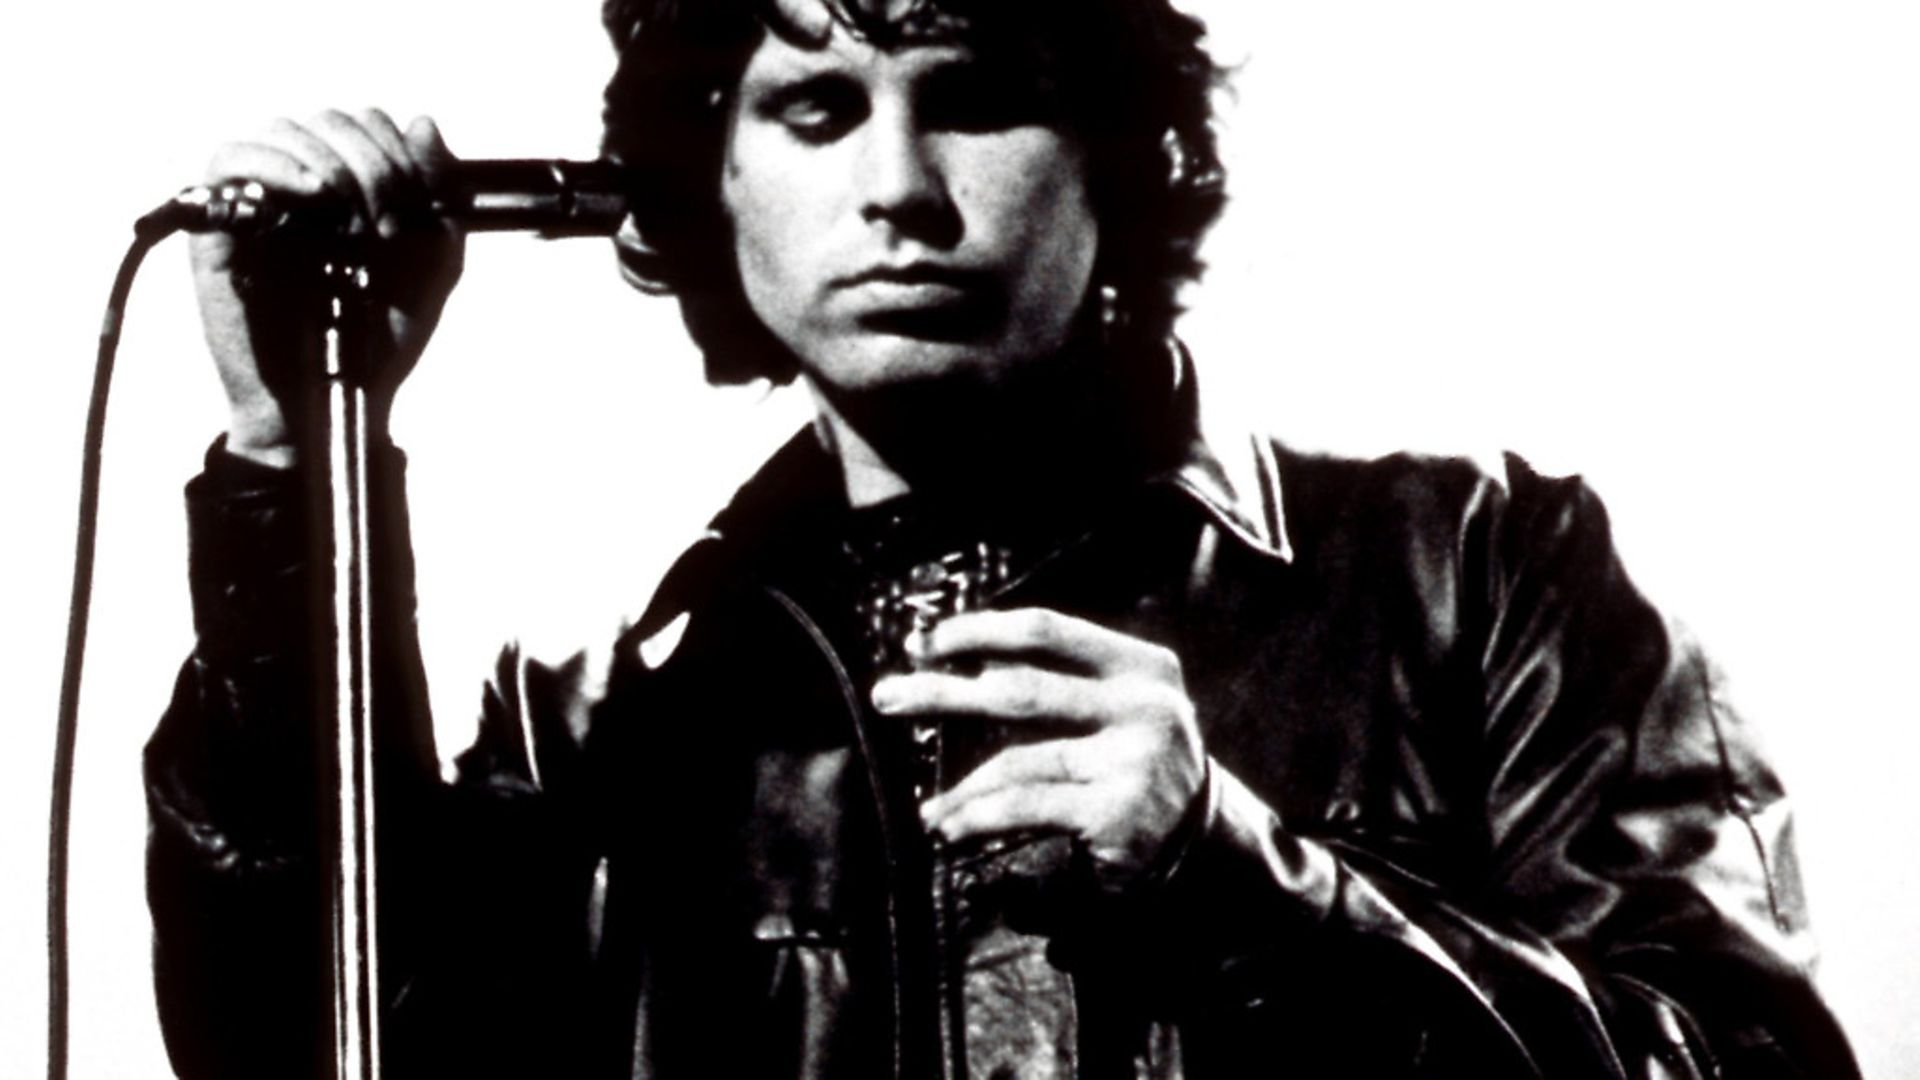 The Doors frontman Jim Morrison performing on stage in 1967. Picture: PA - Credit: EMPICS Entertainment